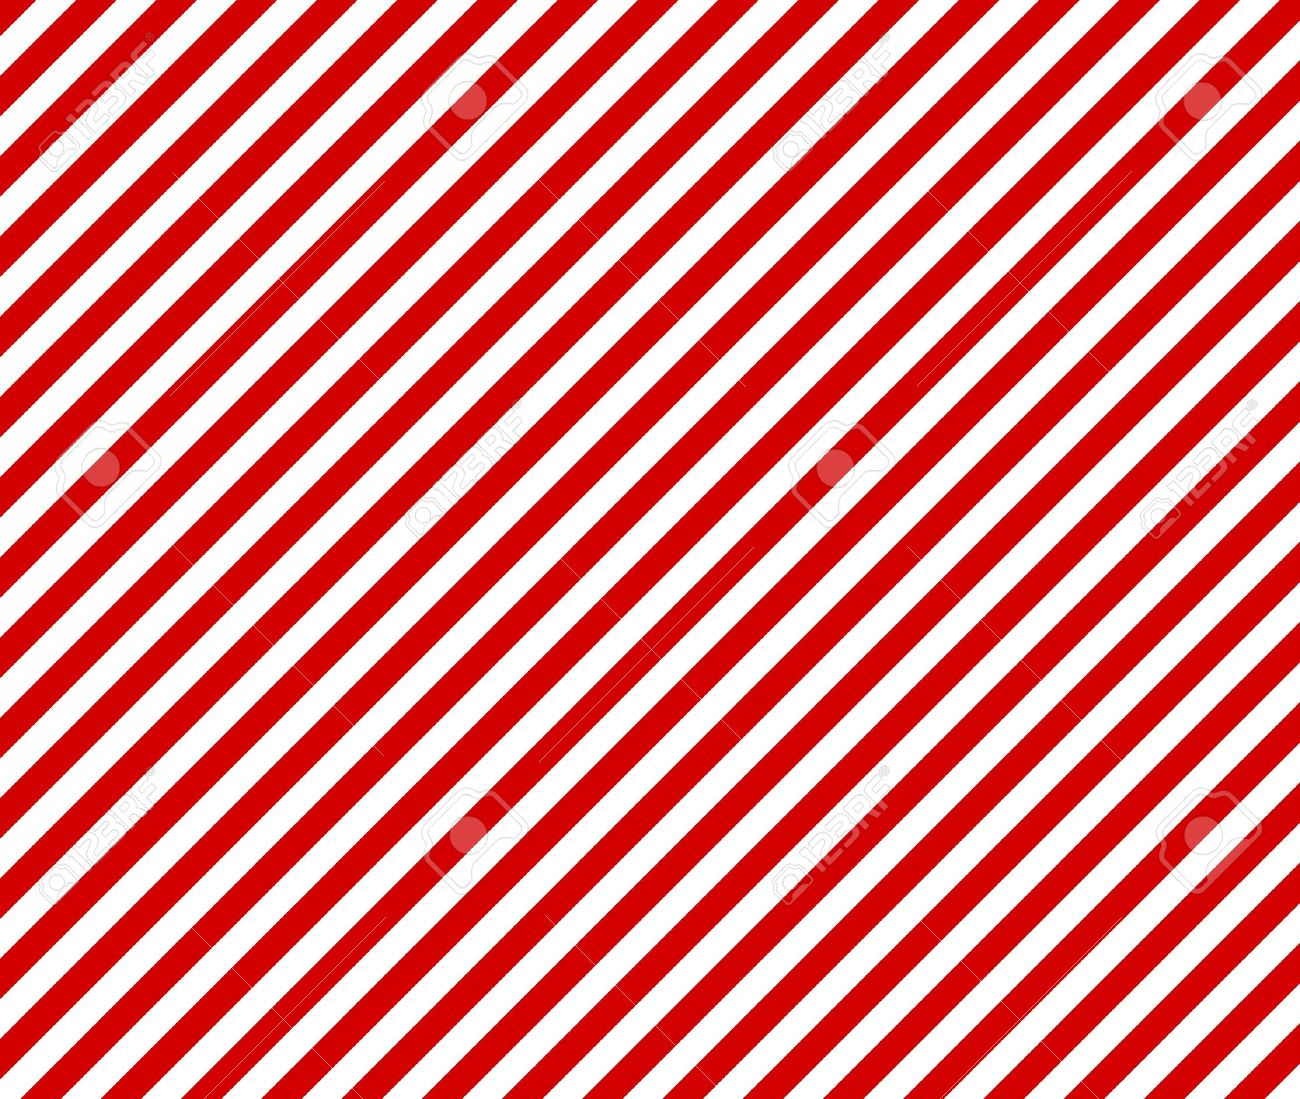 Red and White Diagonal Stripes